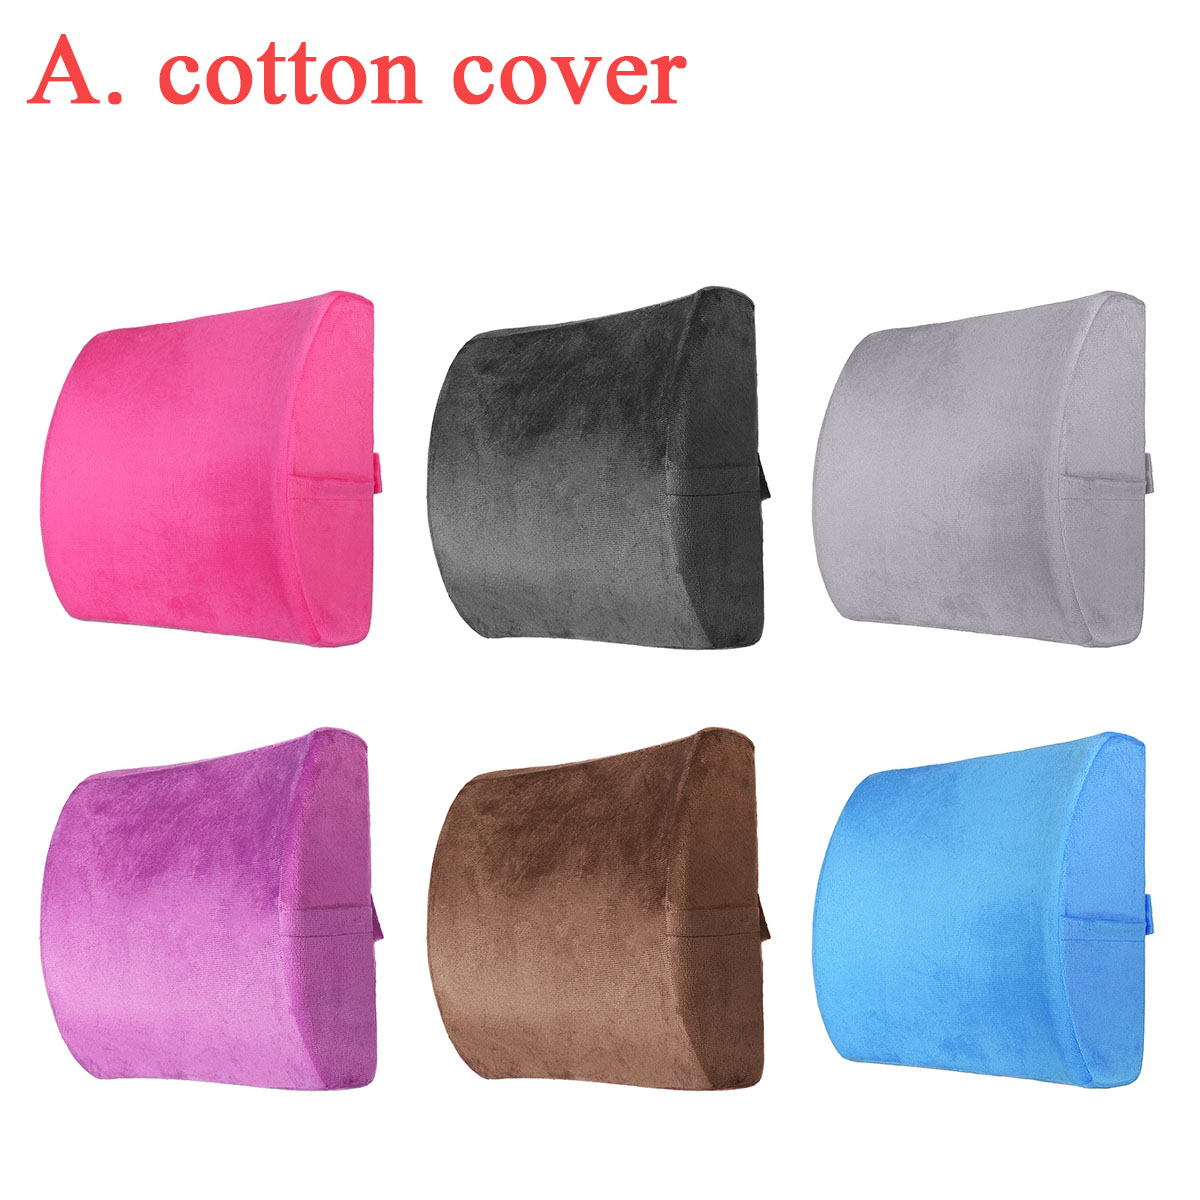 6 Color Lumbar Pillows Made Of Soft Foam For Car Seat To Support And Relieve Back Pain 10